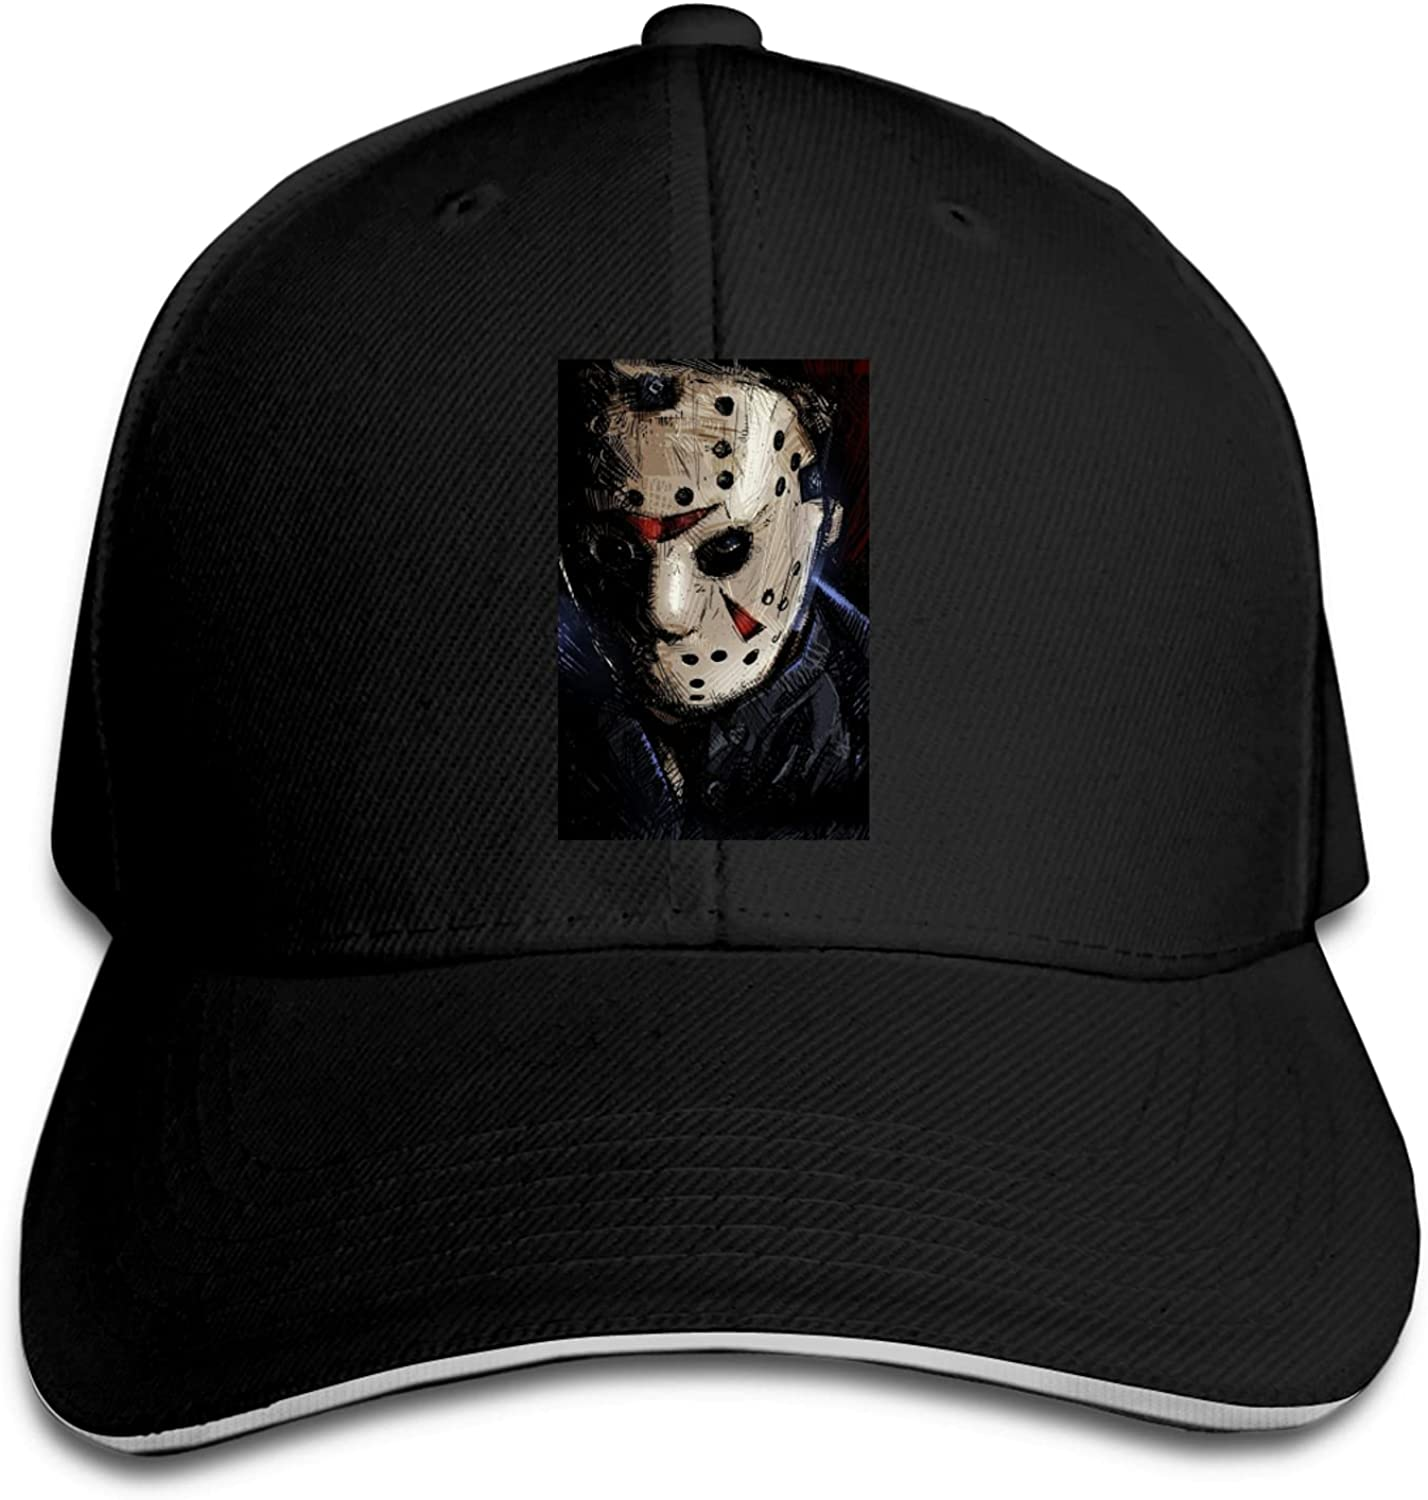 Vieoinas Bclghy Unisex Jason Voorhees Casquette Old Wash Old Baseball Cap Free Adjustment Cap Cowboy Hat